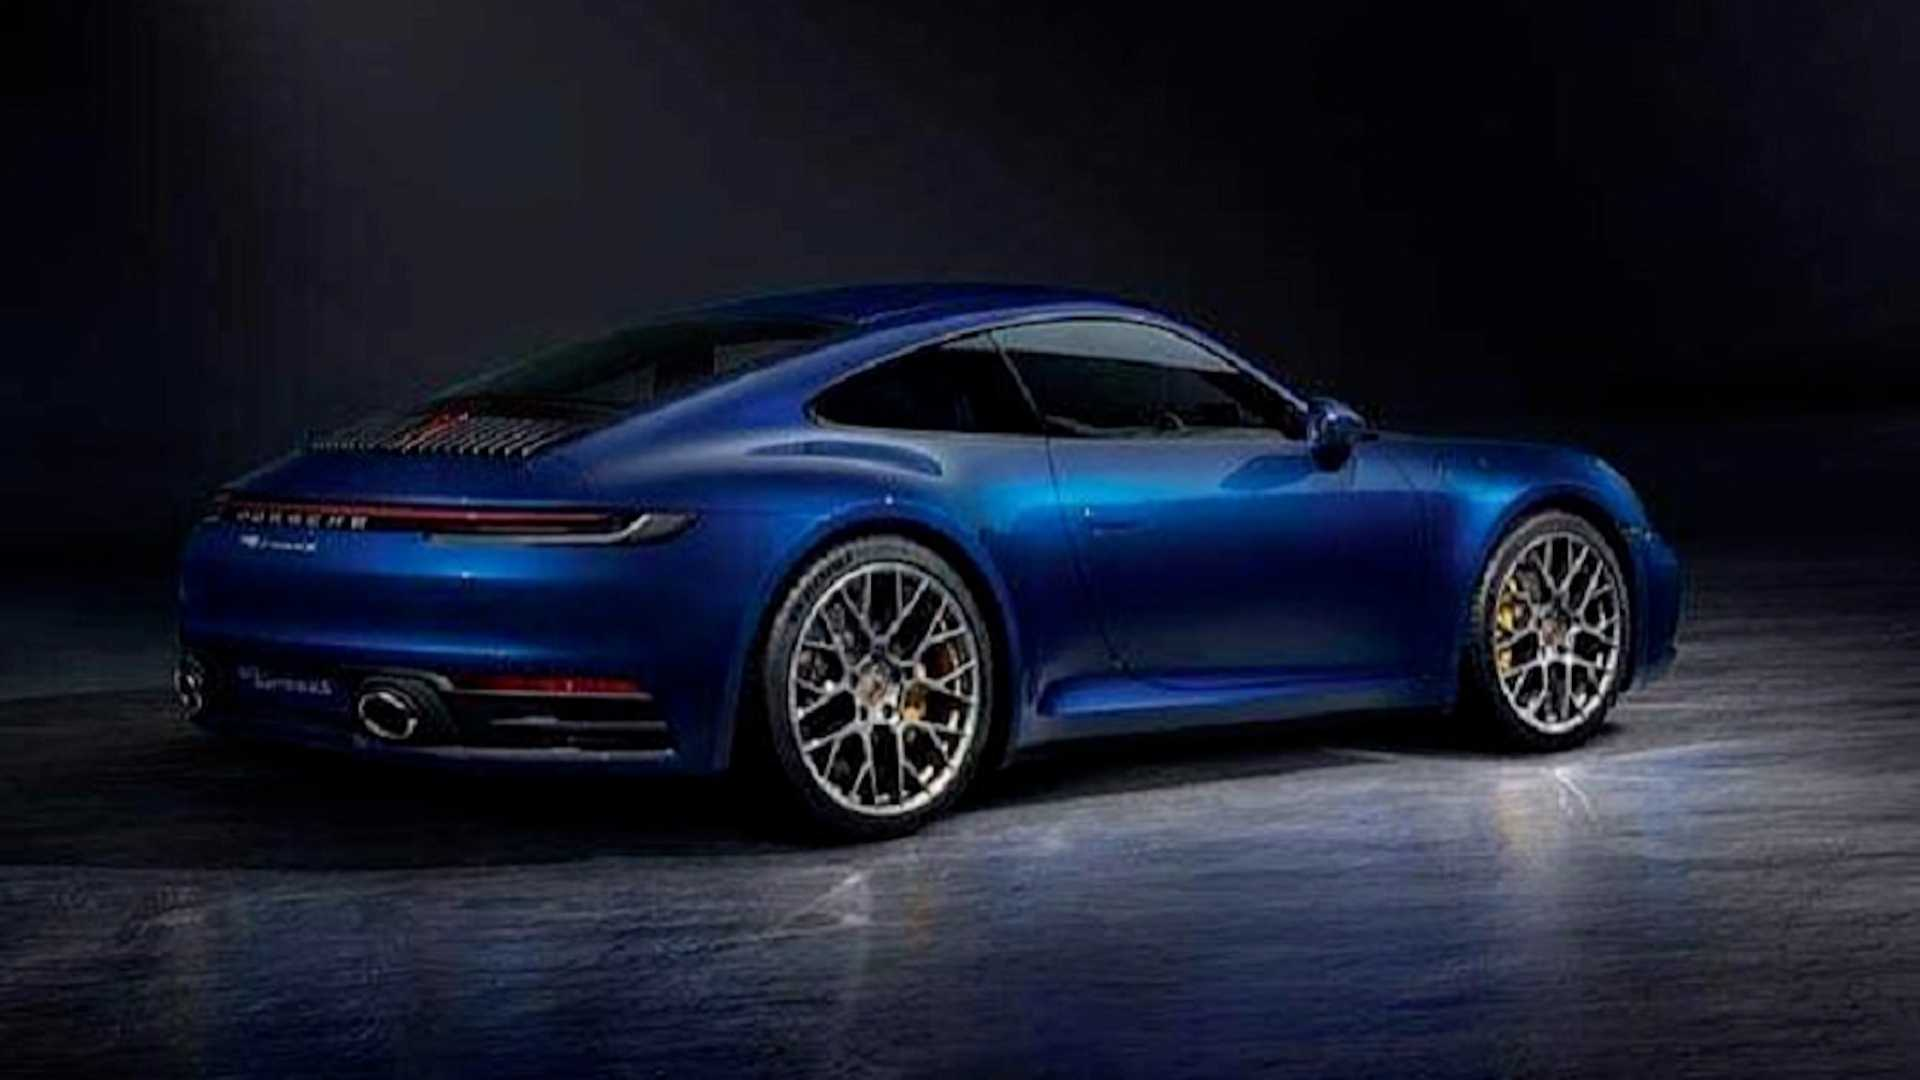 2020 Porsche 911 First Official Photos Leaked Autoevolution